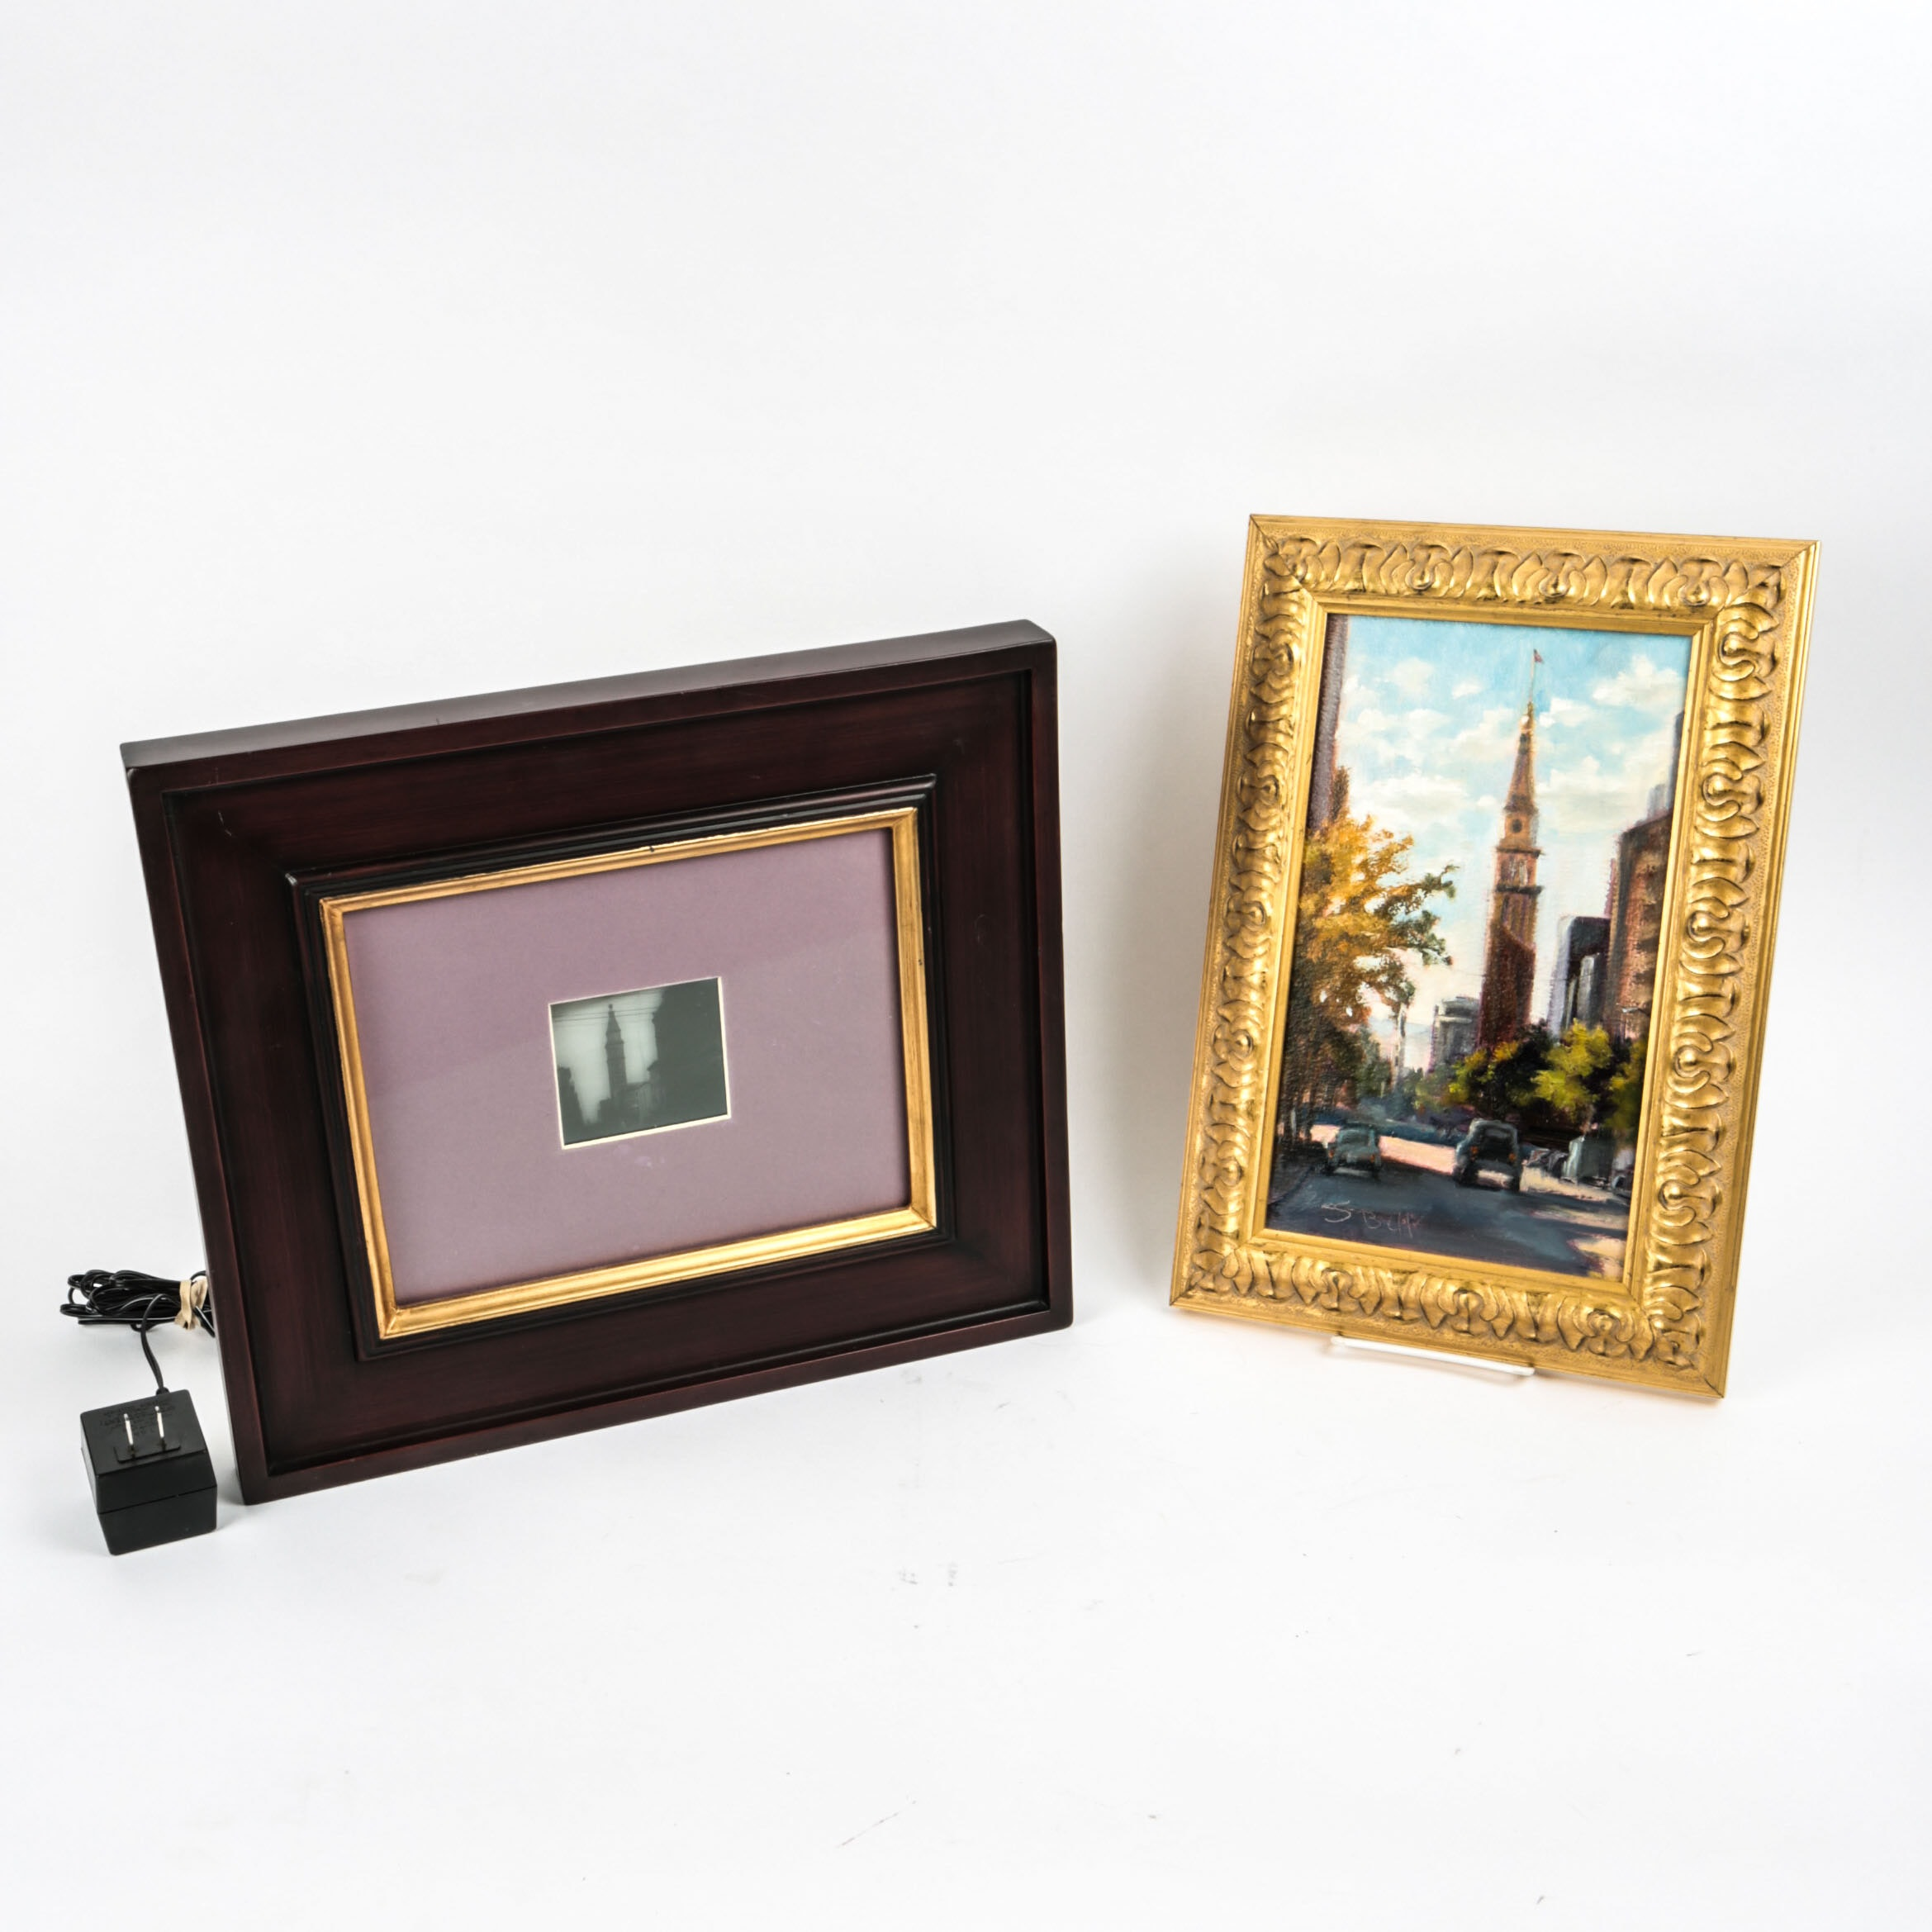 Oil Painting and Light-Up Art Featuring Daniels & Fisher Tower, Denver